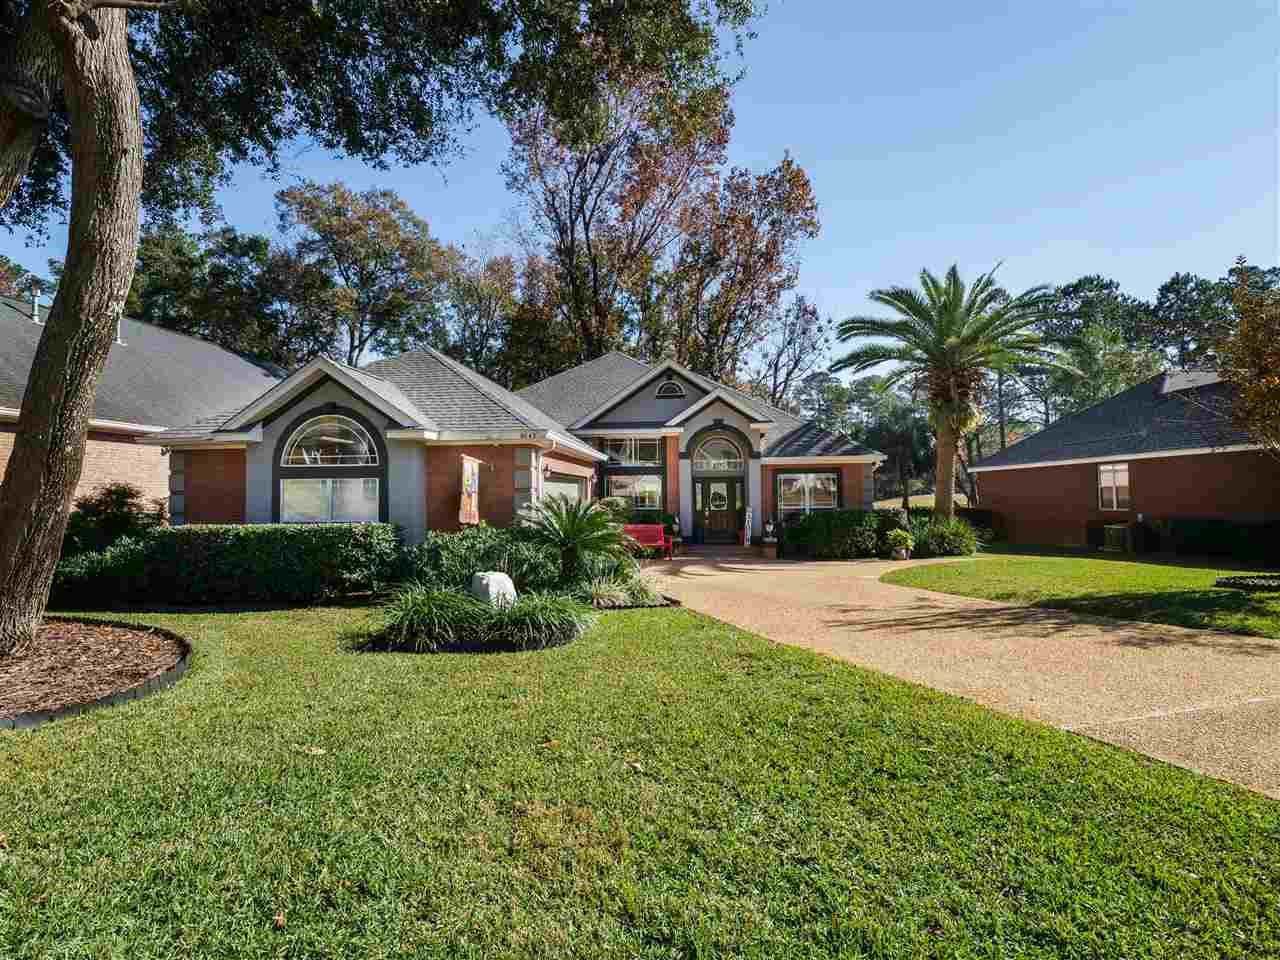 9043 Eagles Ridge Drive, Tallahassee, FL 32312 - MLS#: 326718